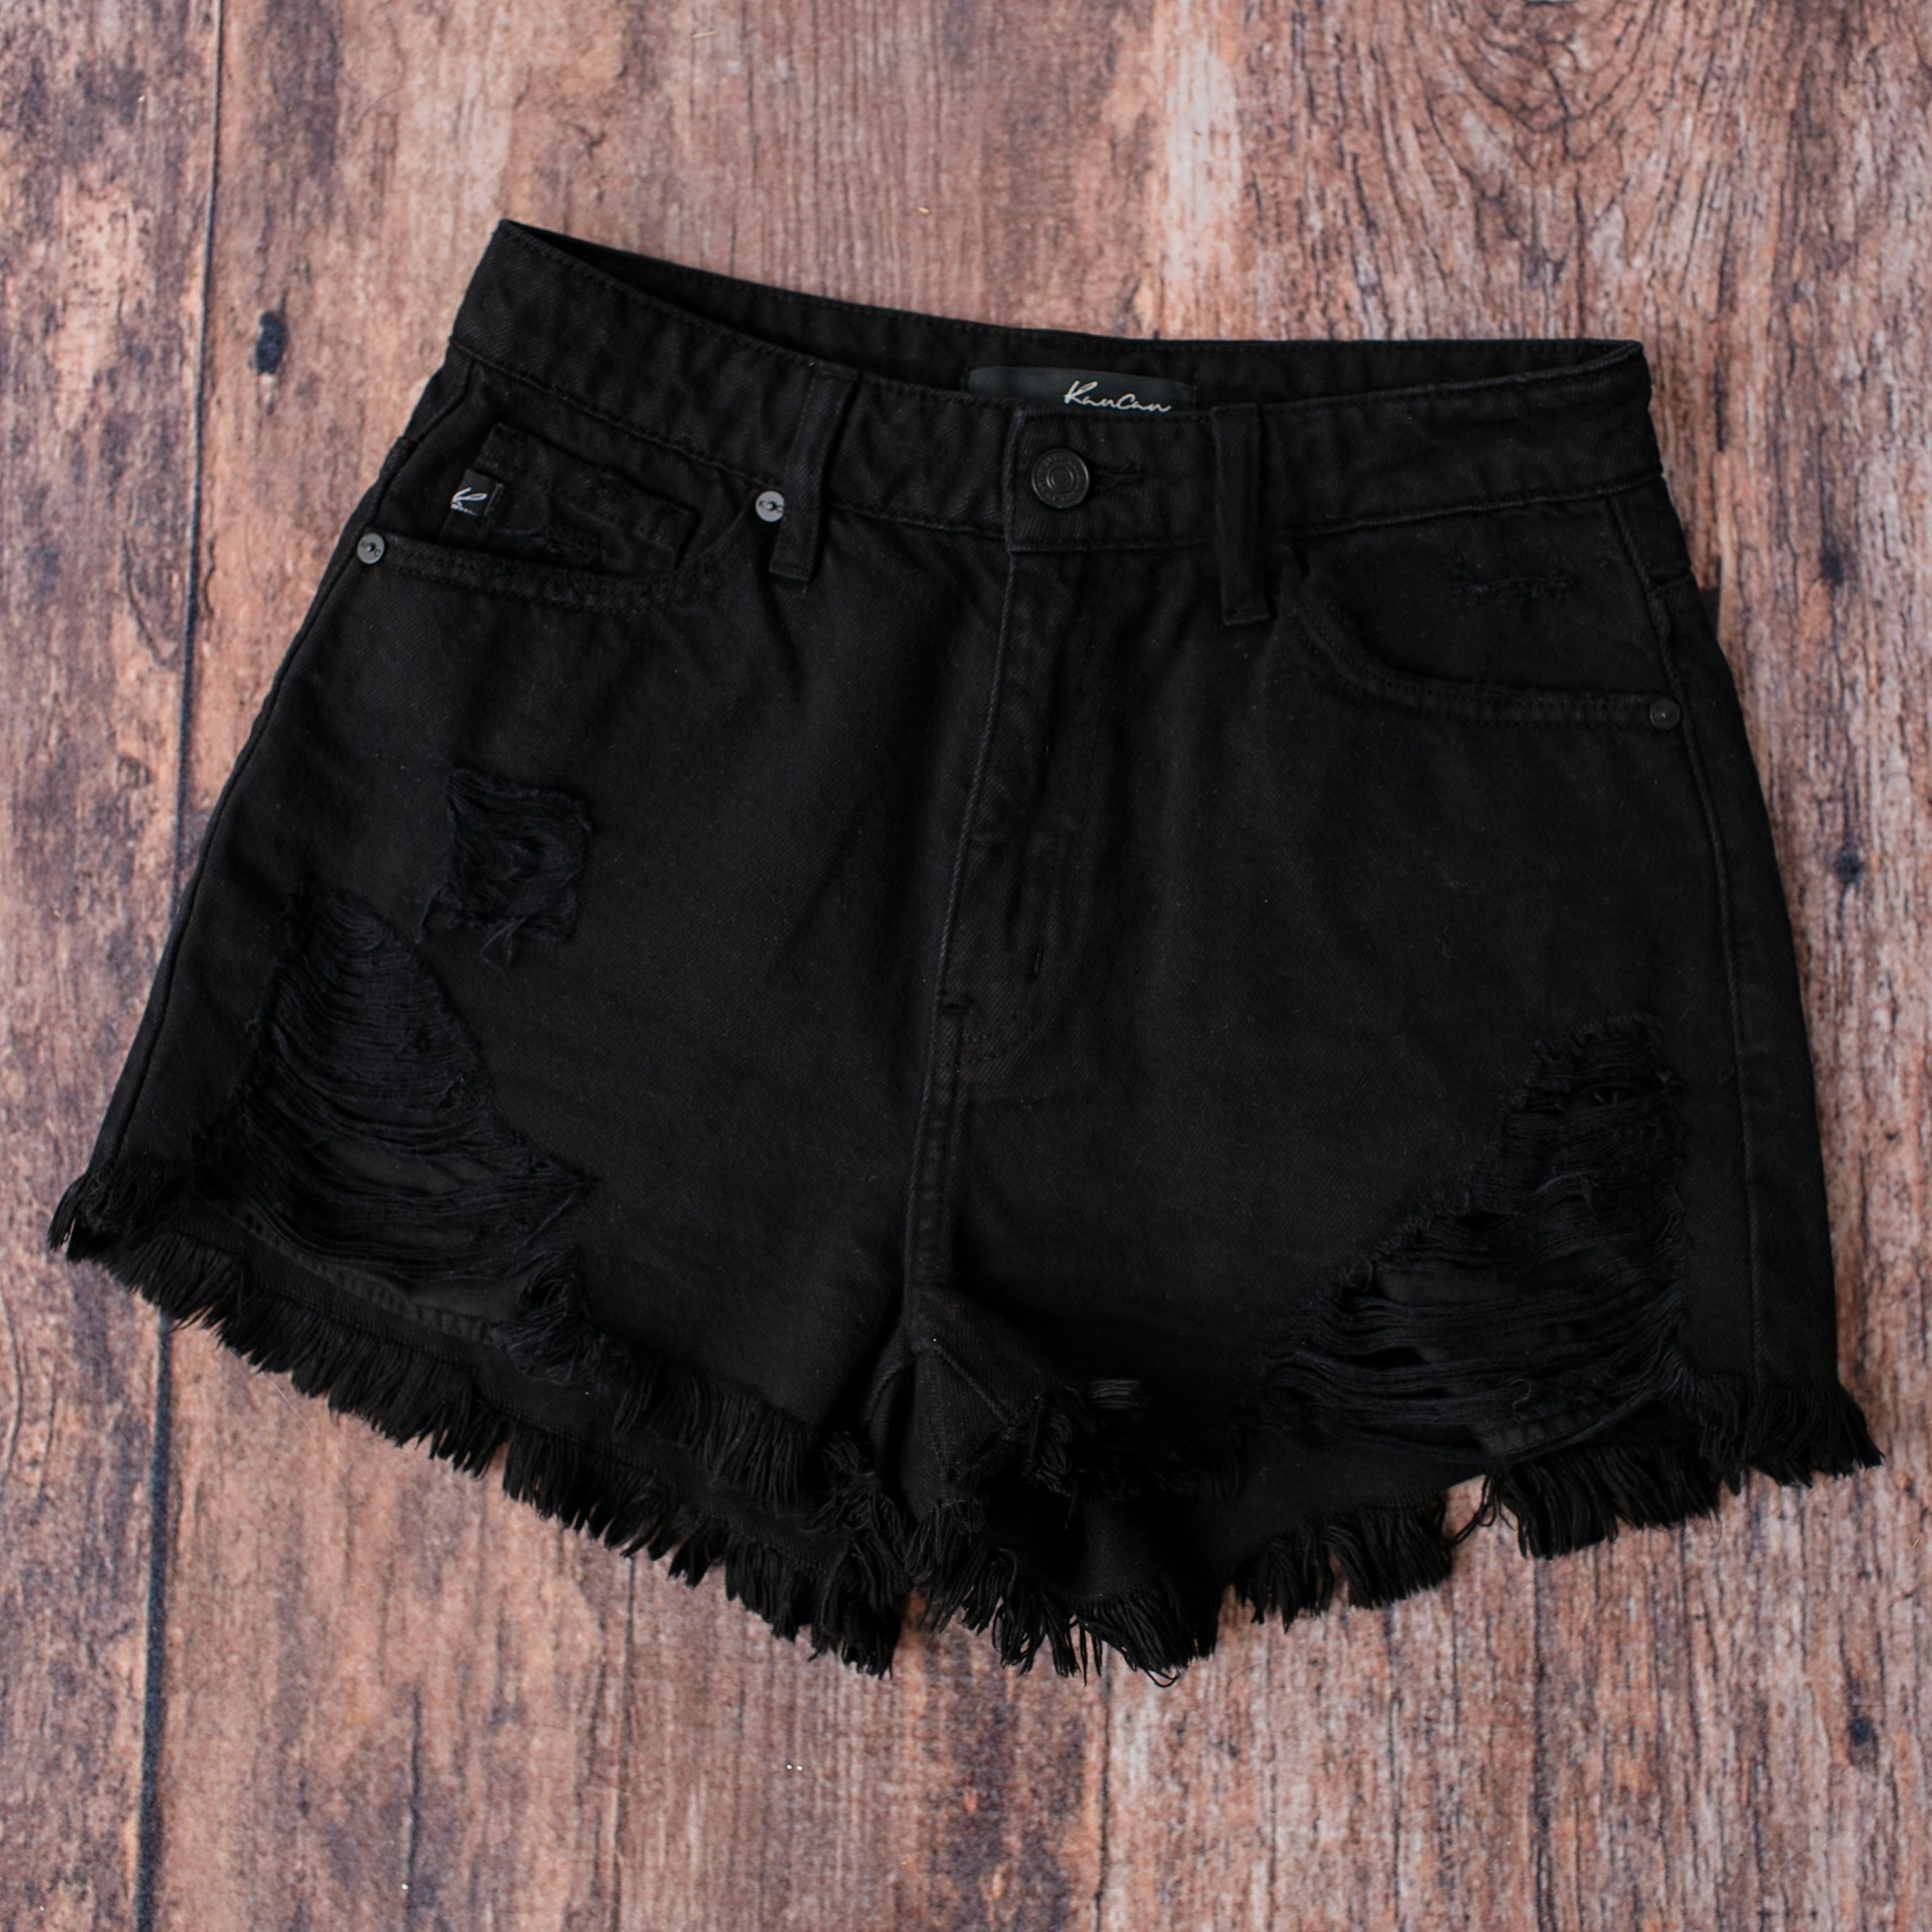 KanCan Black Distressed Short